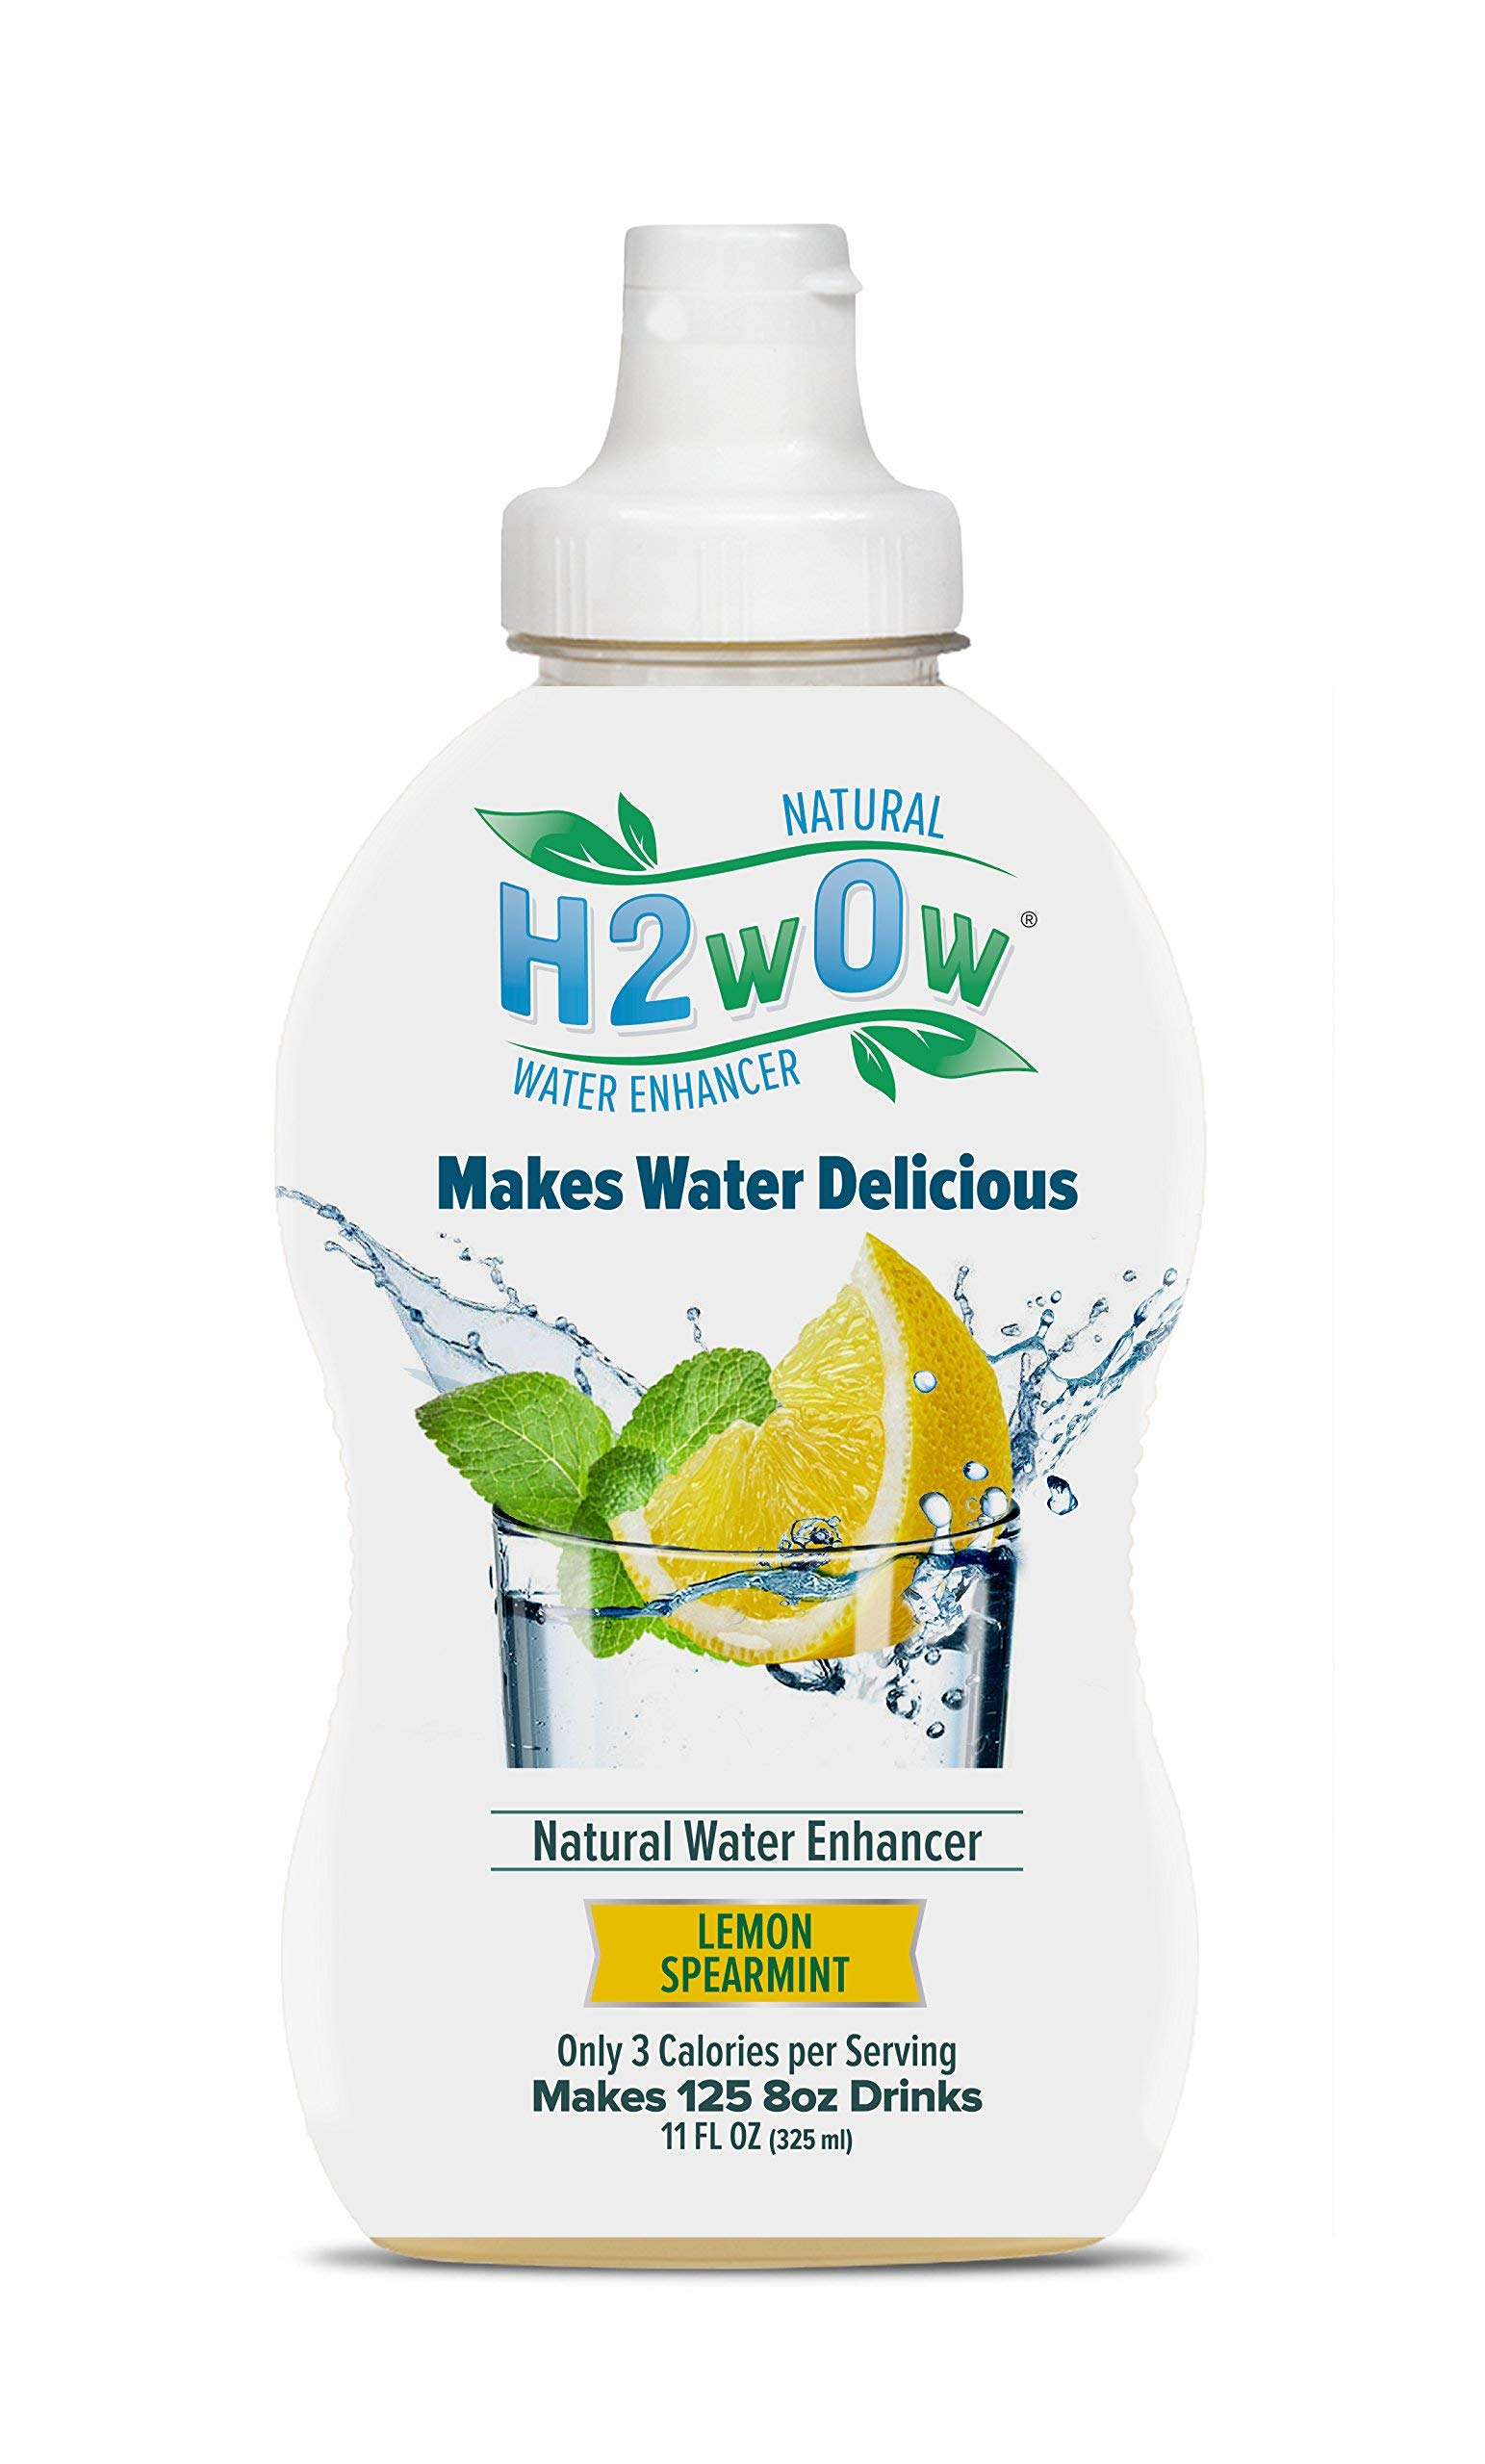 H2wOw Liquid Water Enhancer Drops – ORGANIC & Natural Extracts of Real Fruit - a Hint of Organic Stevia - Delicious Lemon Spearmint Flavored Water 11oz/125 servings